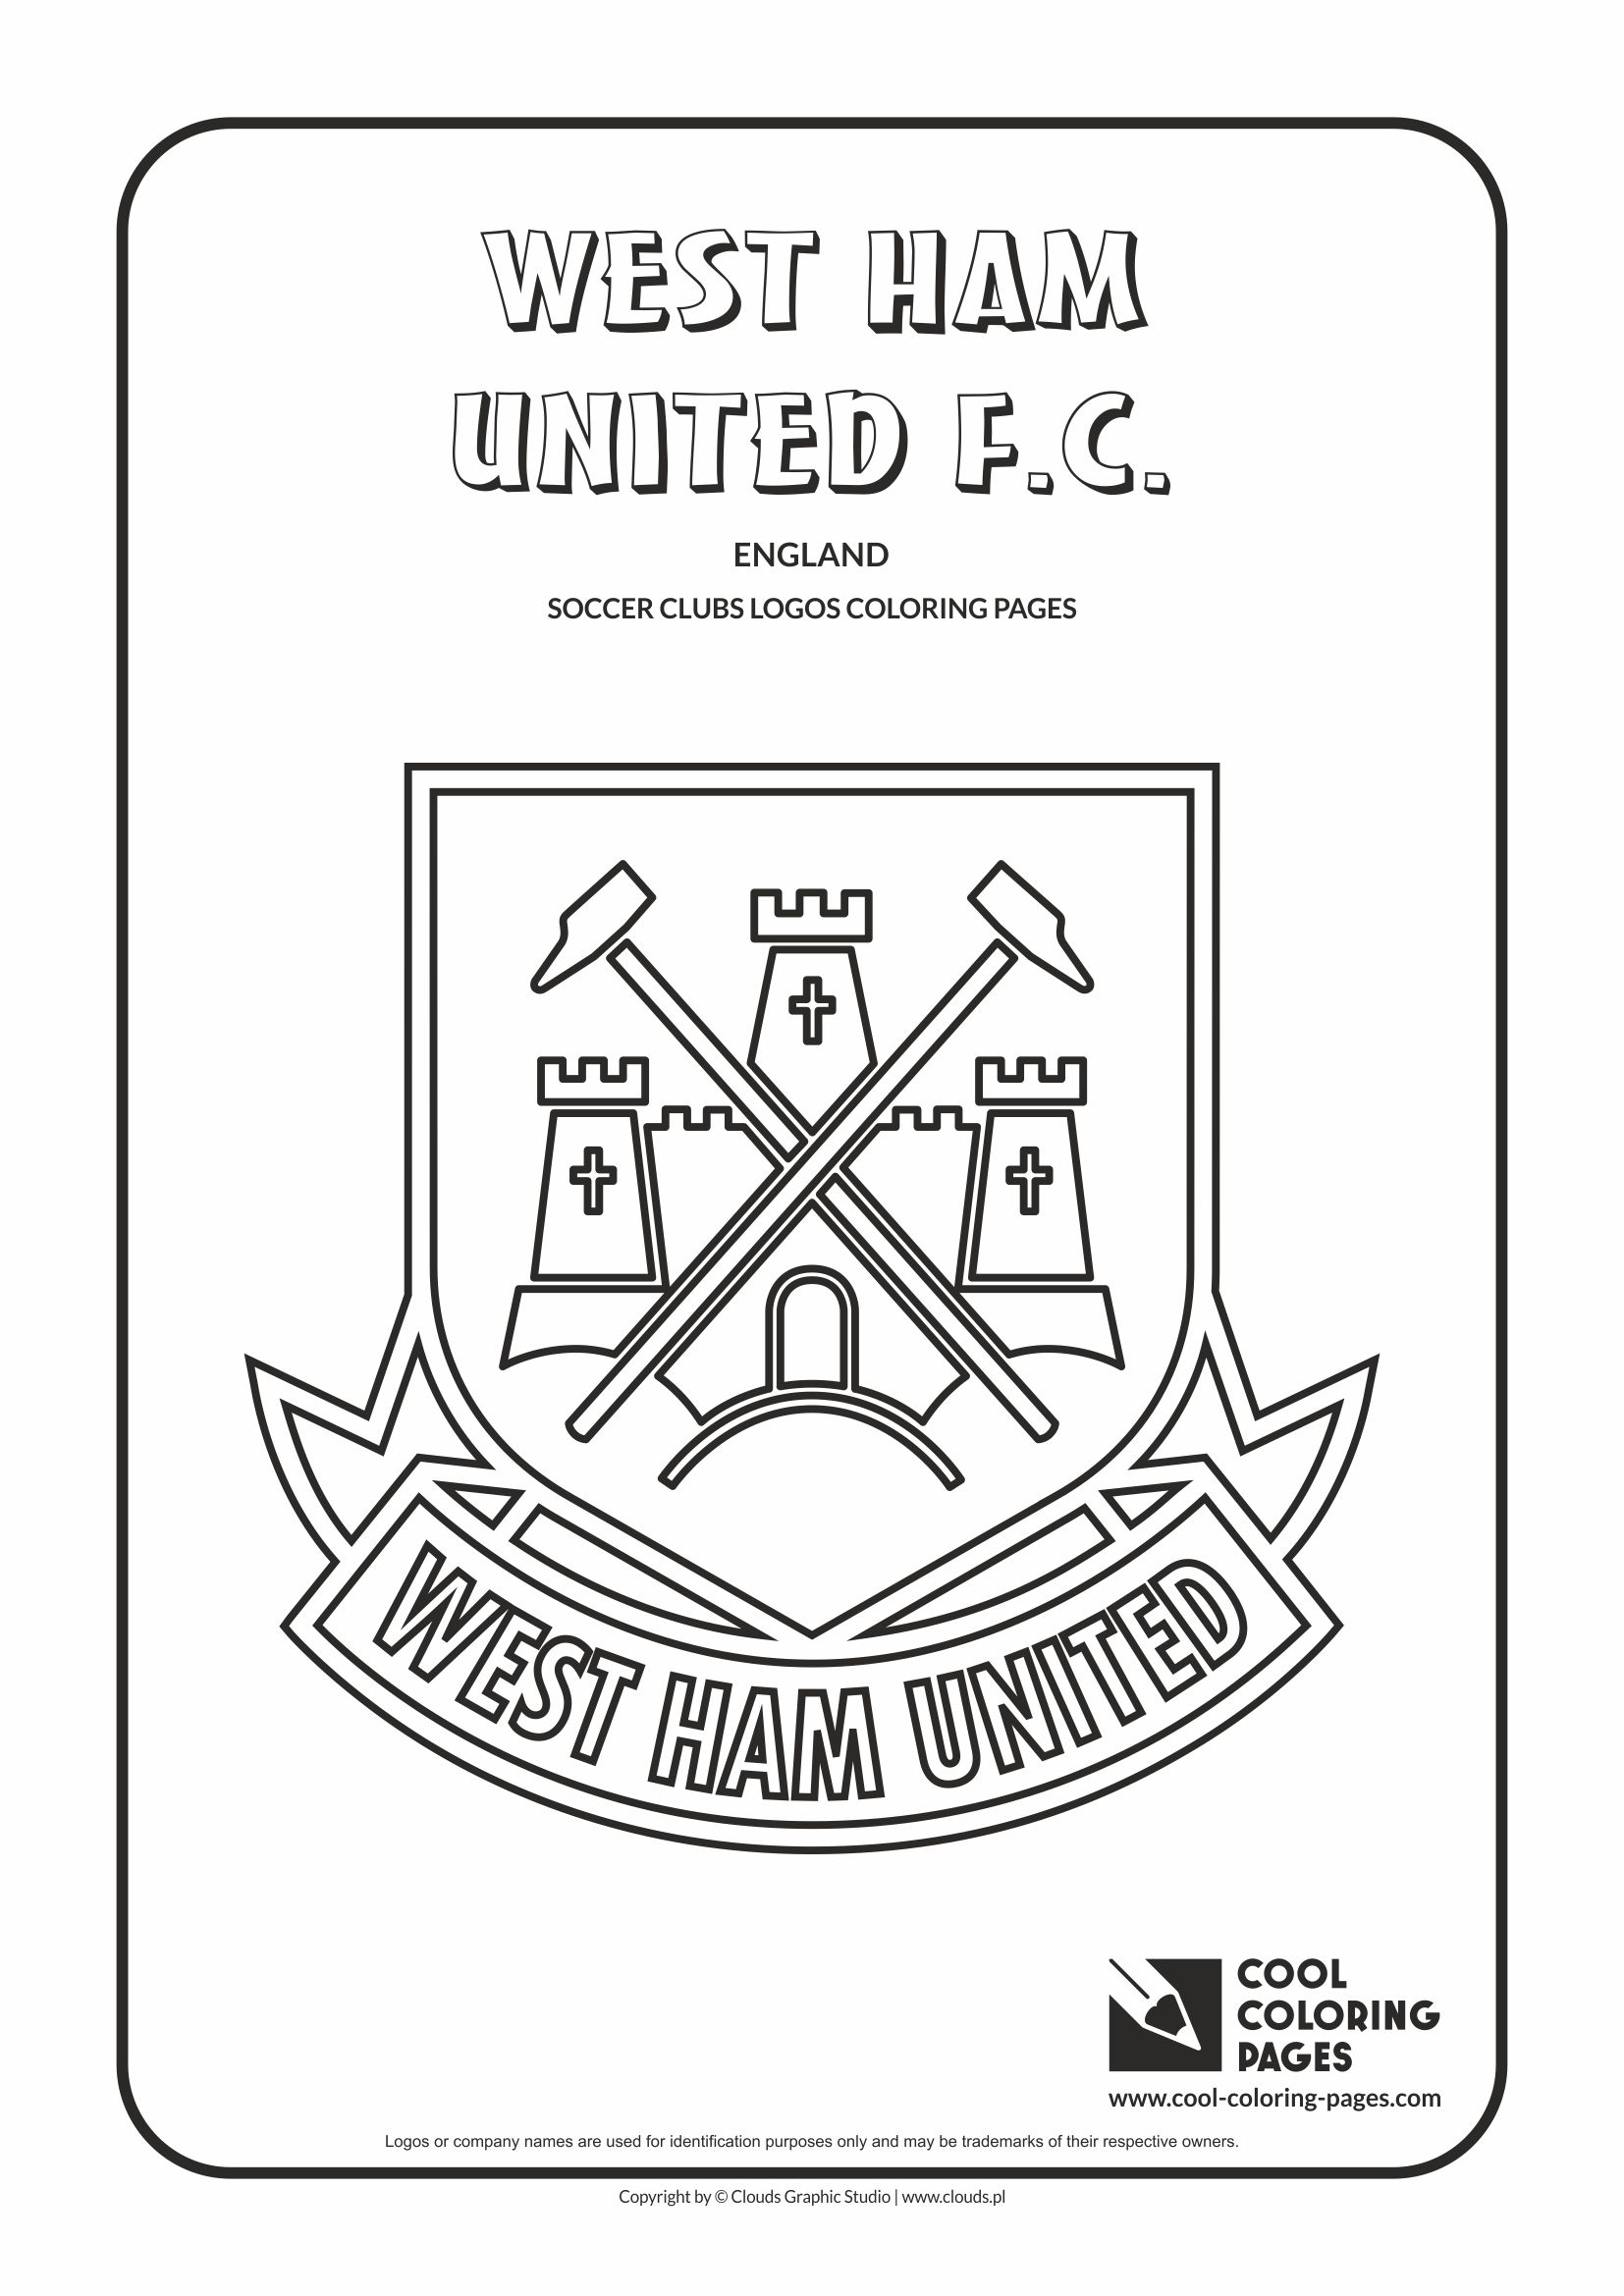 soccer clubs logos cool coloring pages